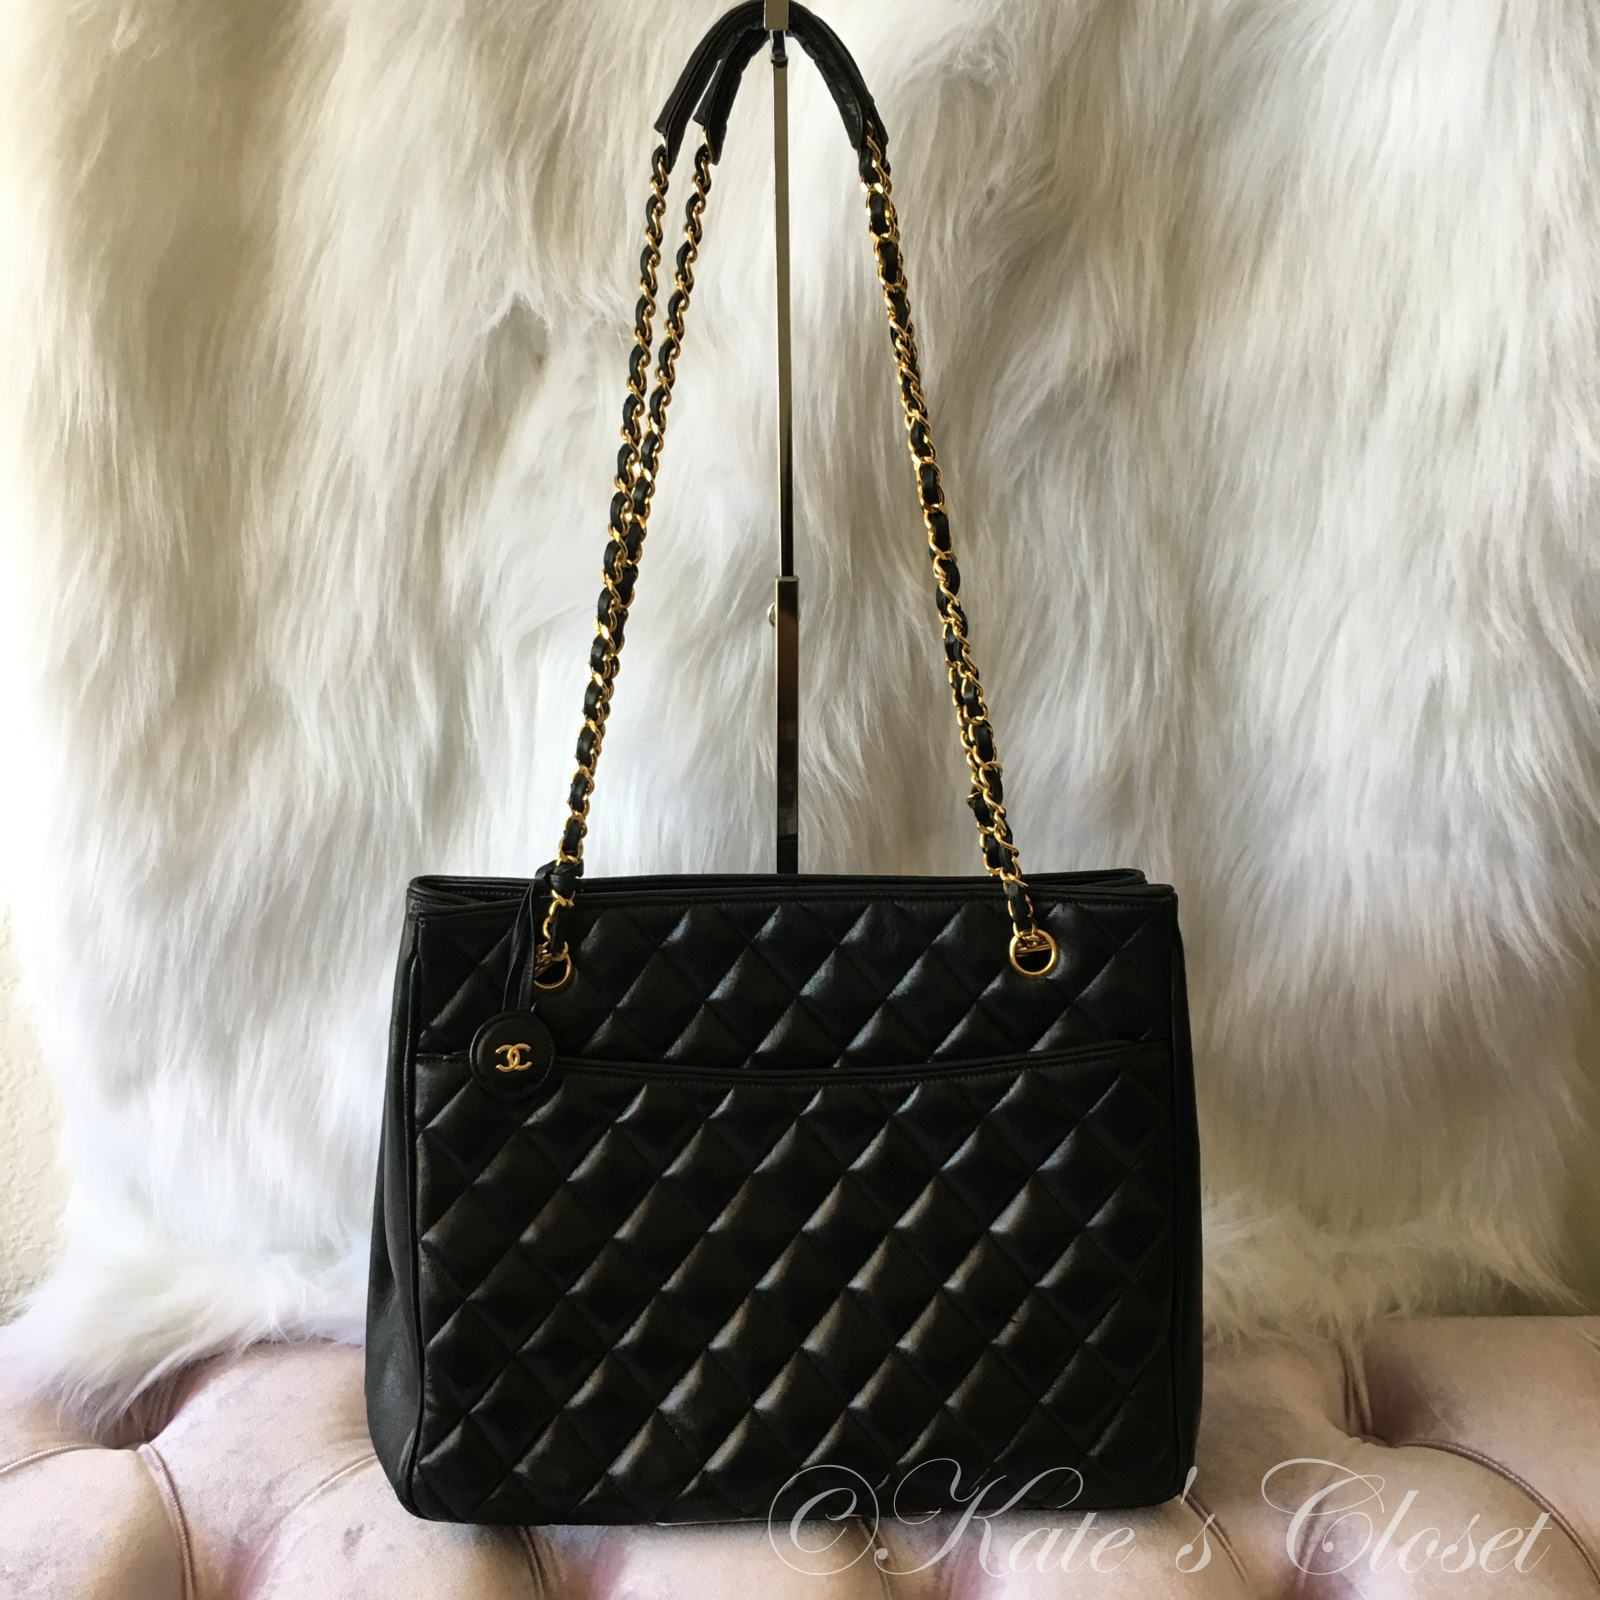 CHANEL Vintage Lambskin Quilted Tote